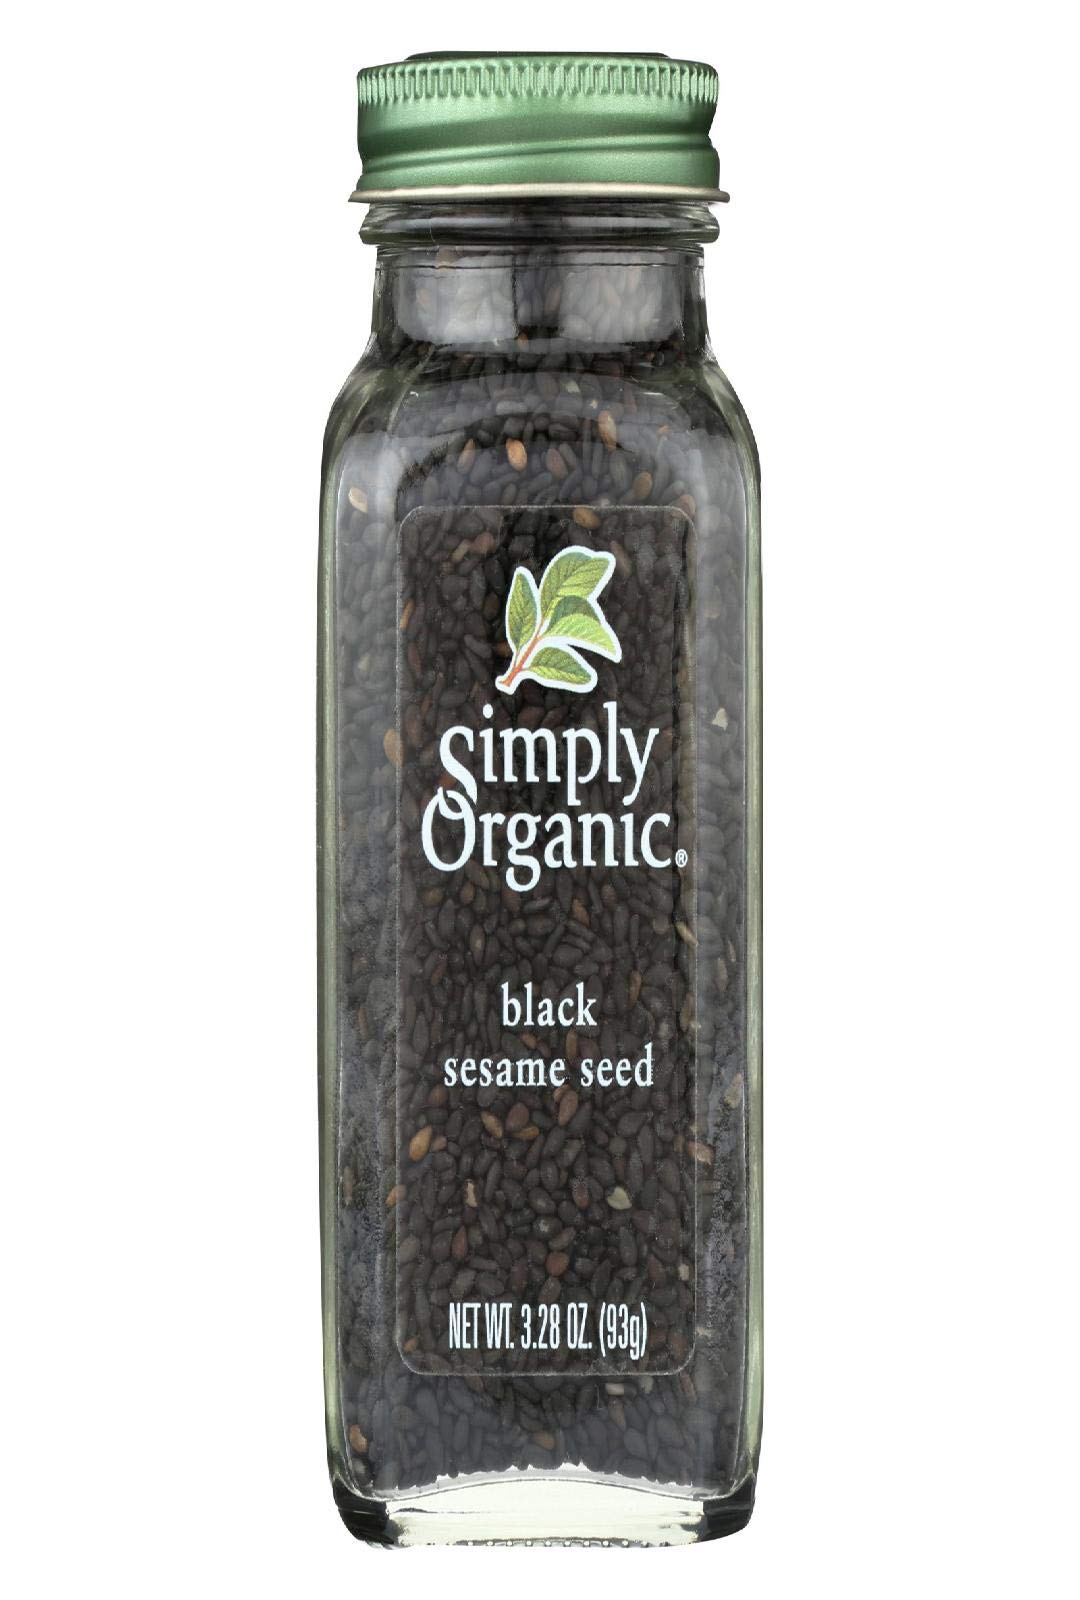 SIMPLY ORGANIC, SPICE, OG2, SESAME SEED, BLK - Pack of 6